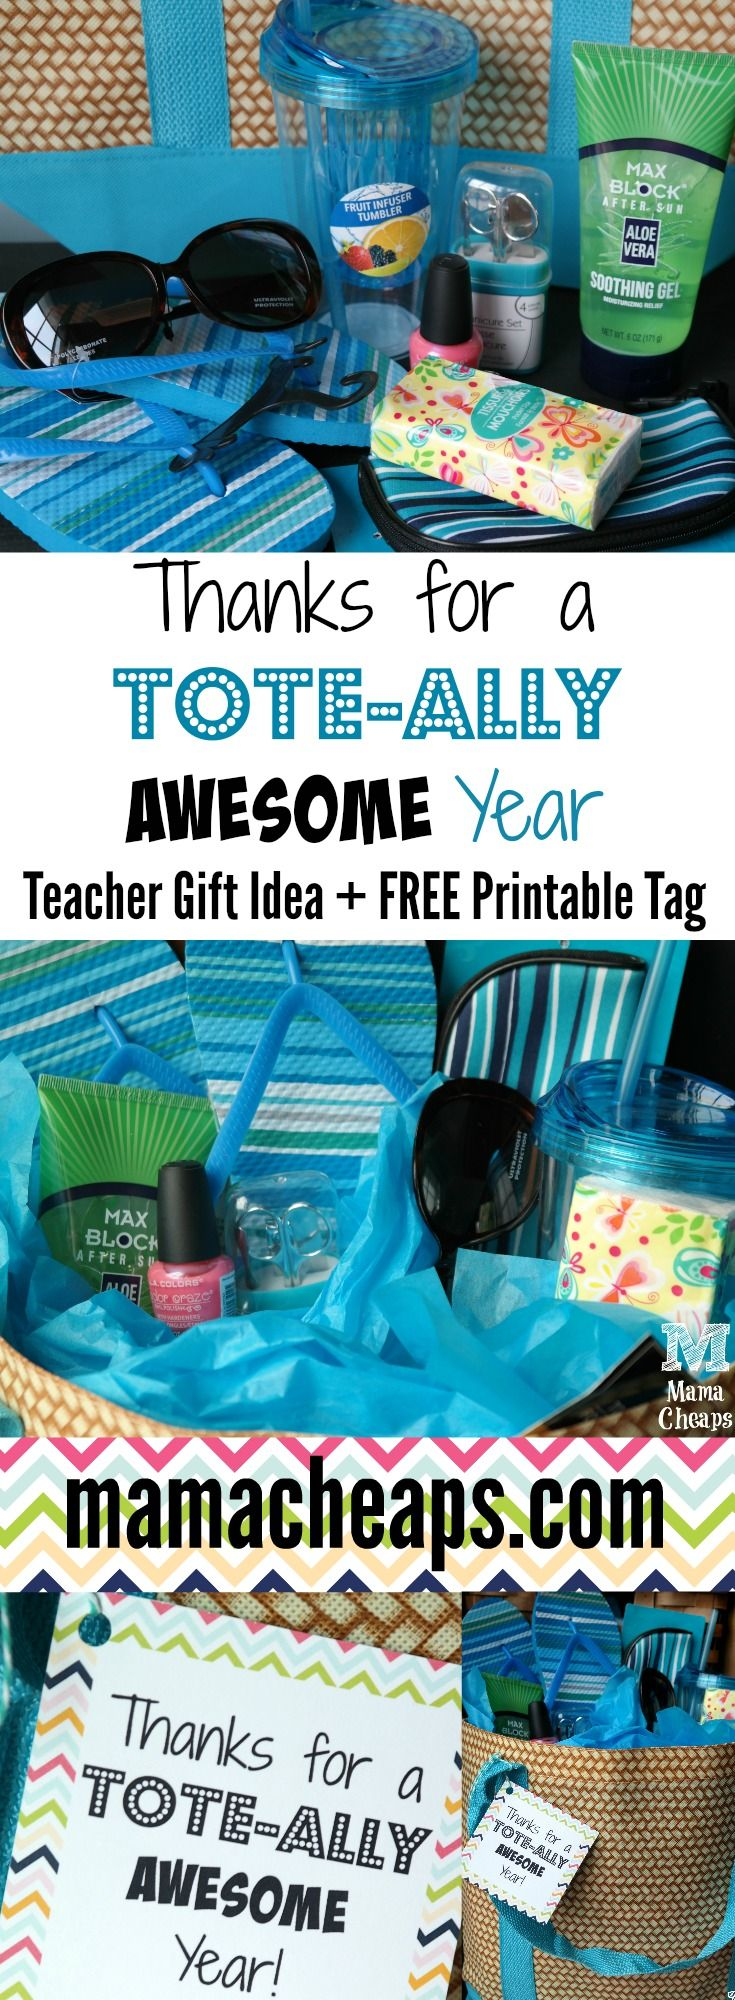 TOTE-Ally Awesome Teacher Tote Bag Gift Idea + FREE Printable Tag - less than $9 for everything pictured!